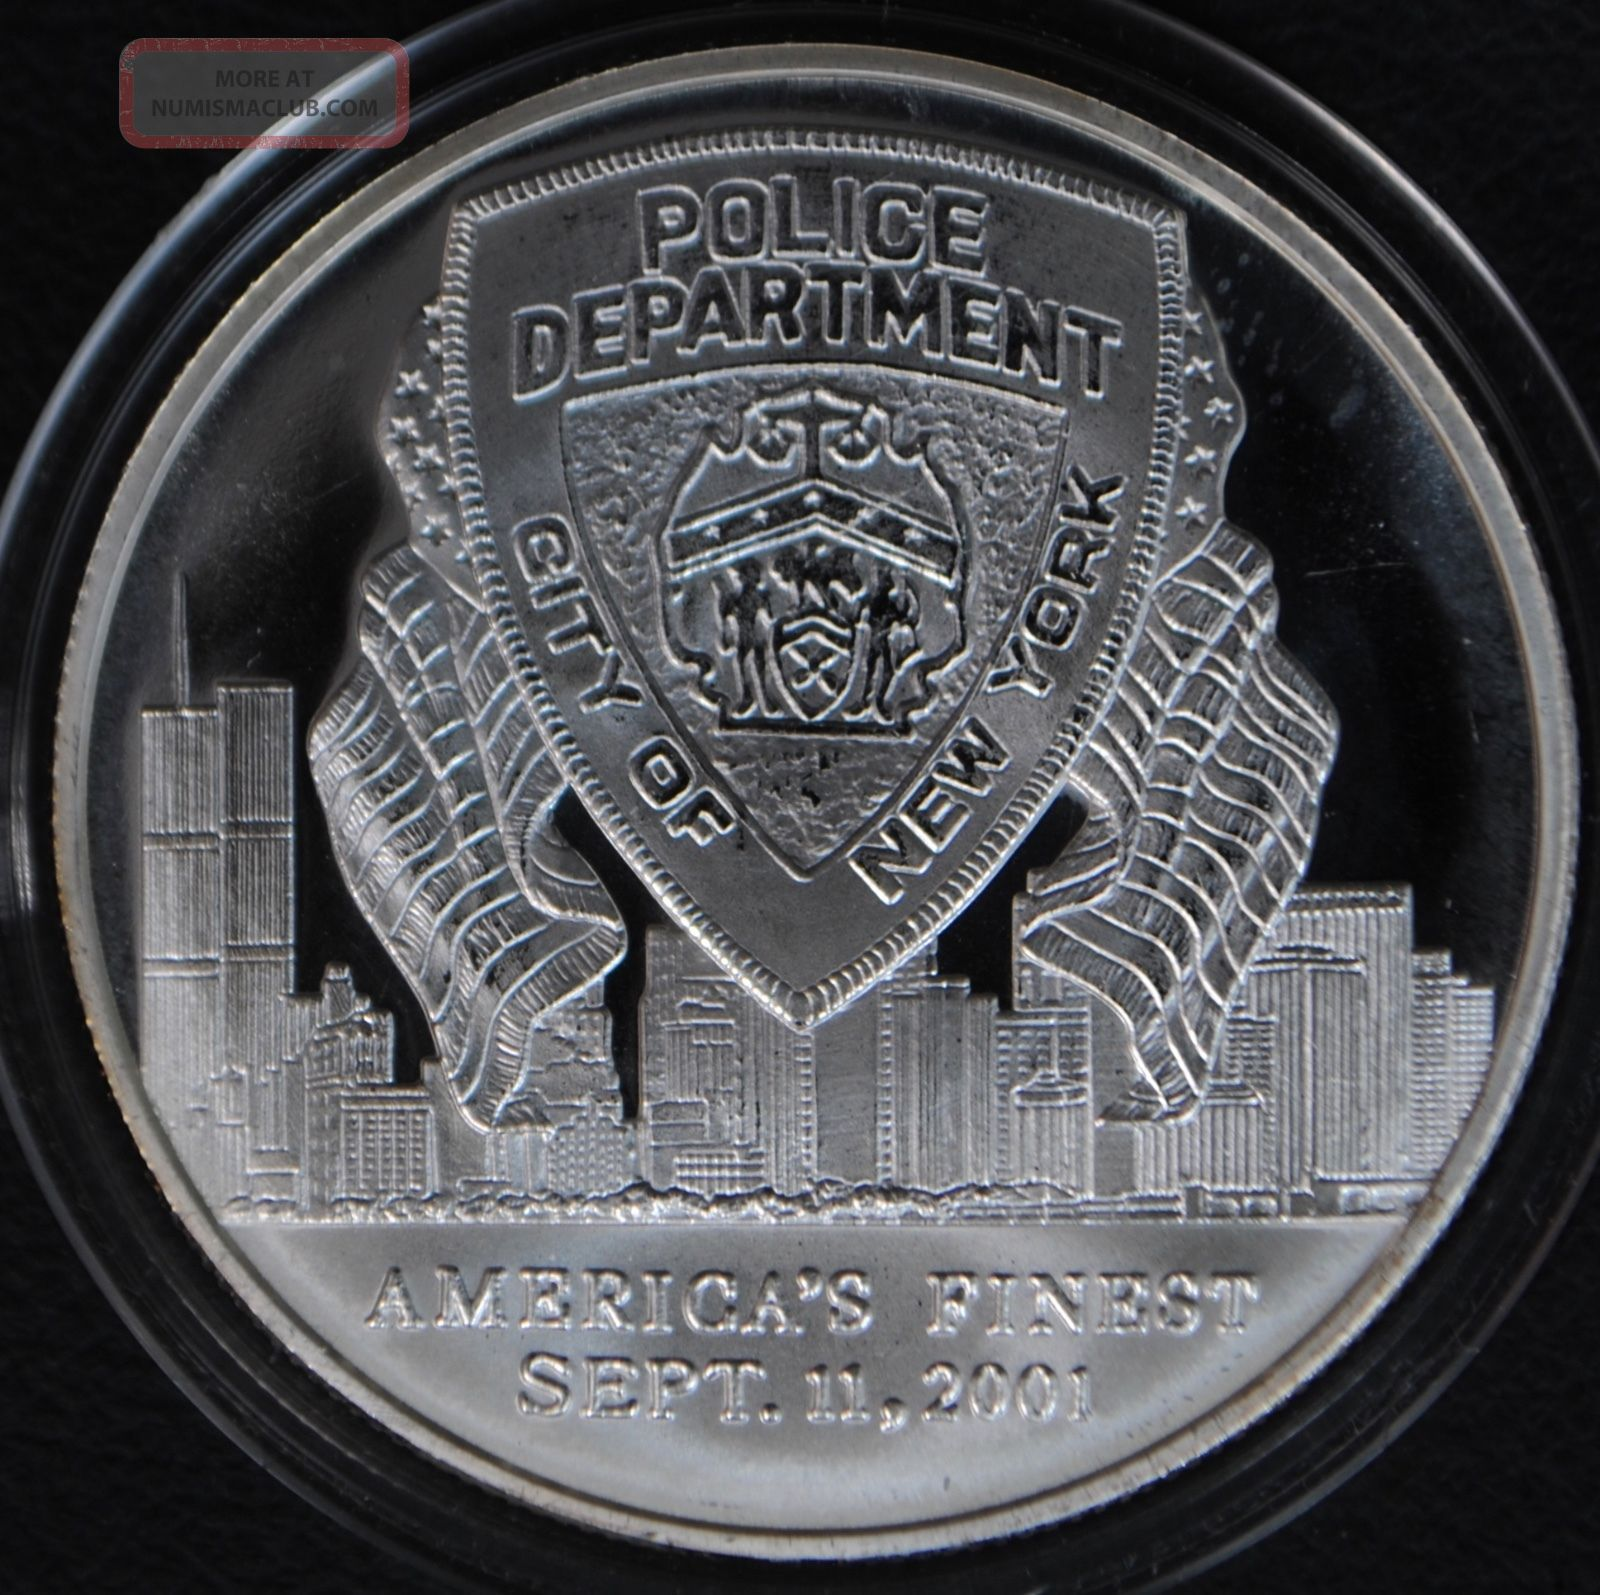 9/11 York Police Department 1 Oz.  999 Silver Round Medal Pledge Nypd Silver photo